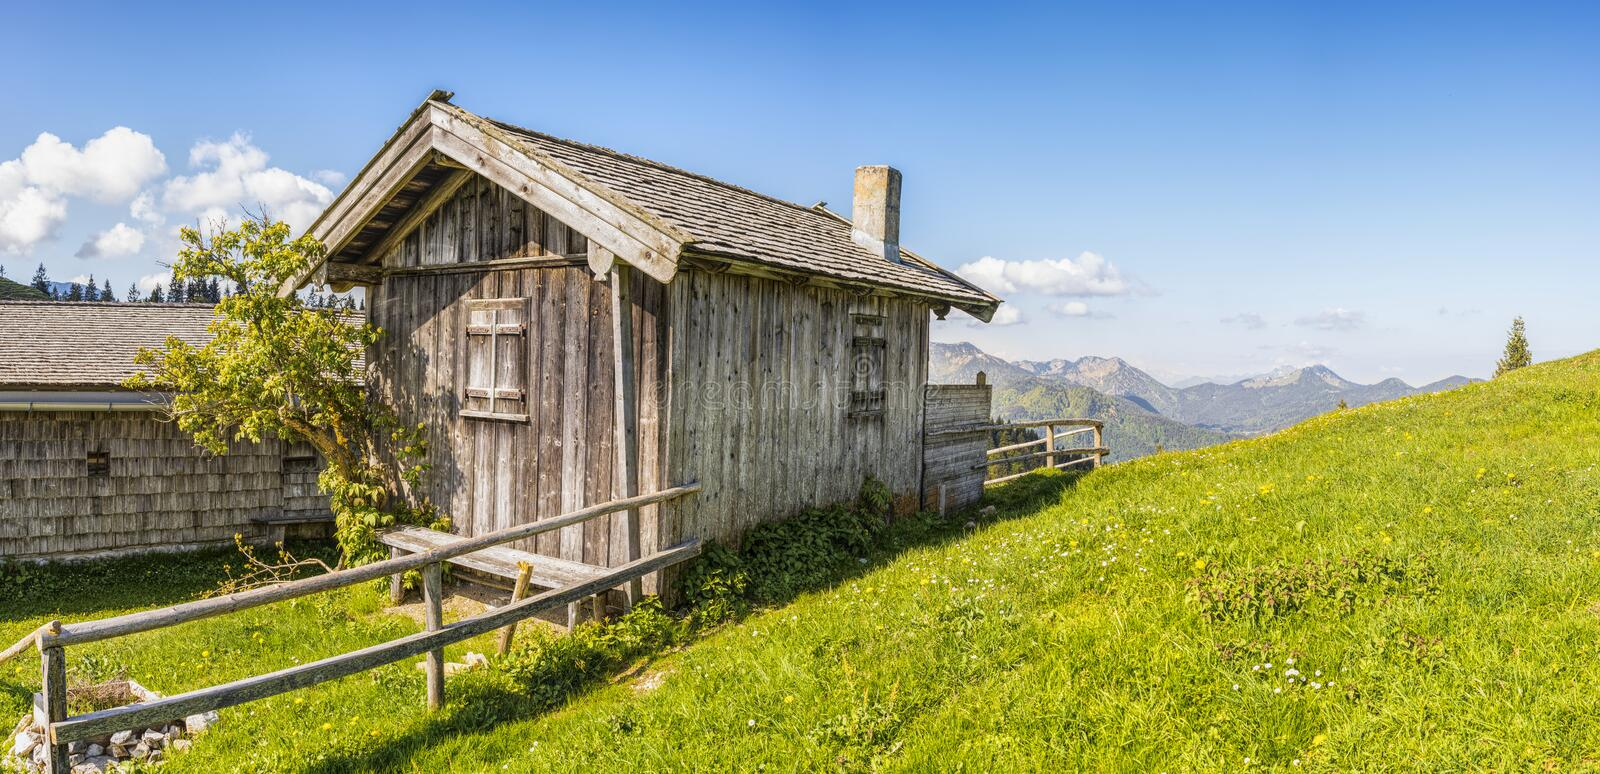 Wooden House at Daytime royalty free stock image